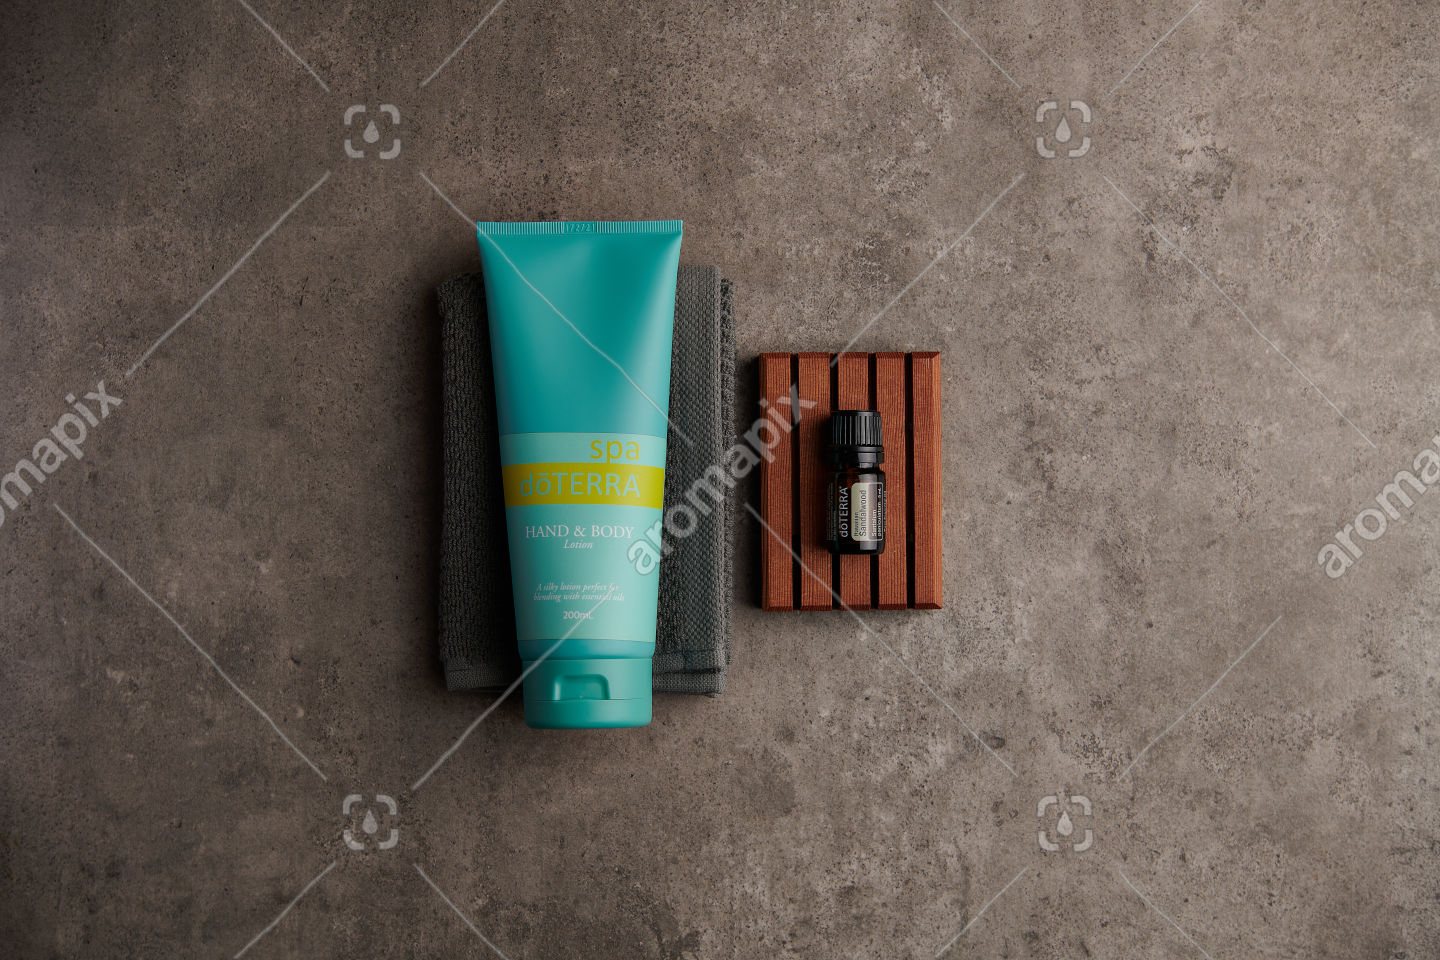 doTERRA Spa Hand and Body Lotion and Hawaiian Sandalwood essential oil on stone